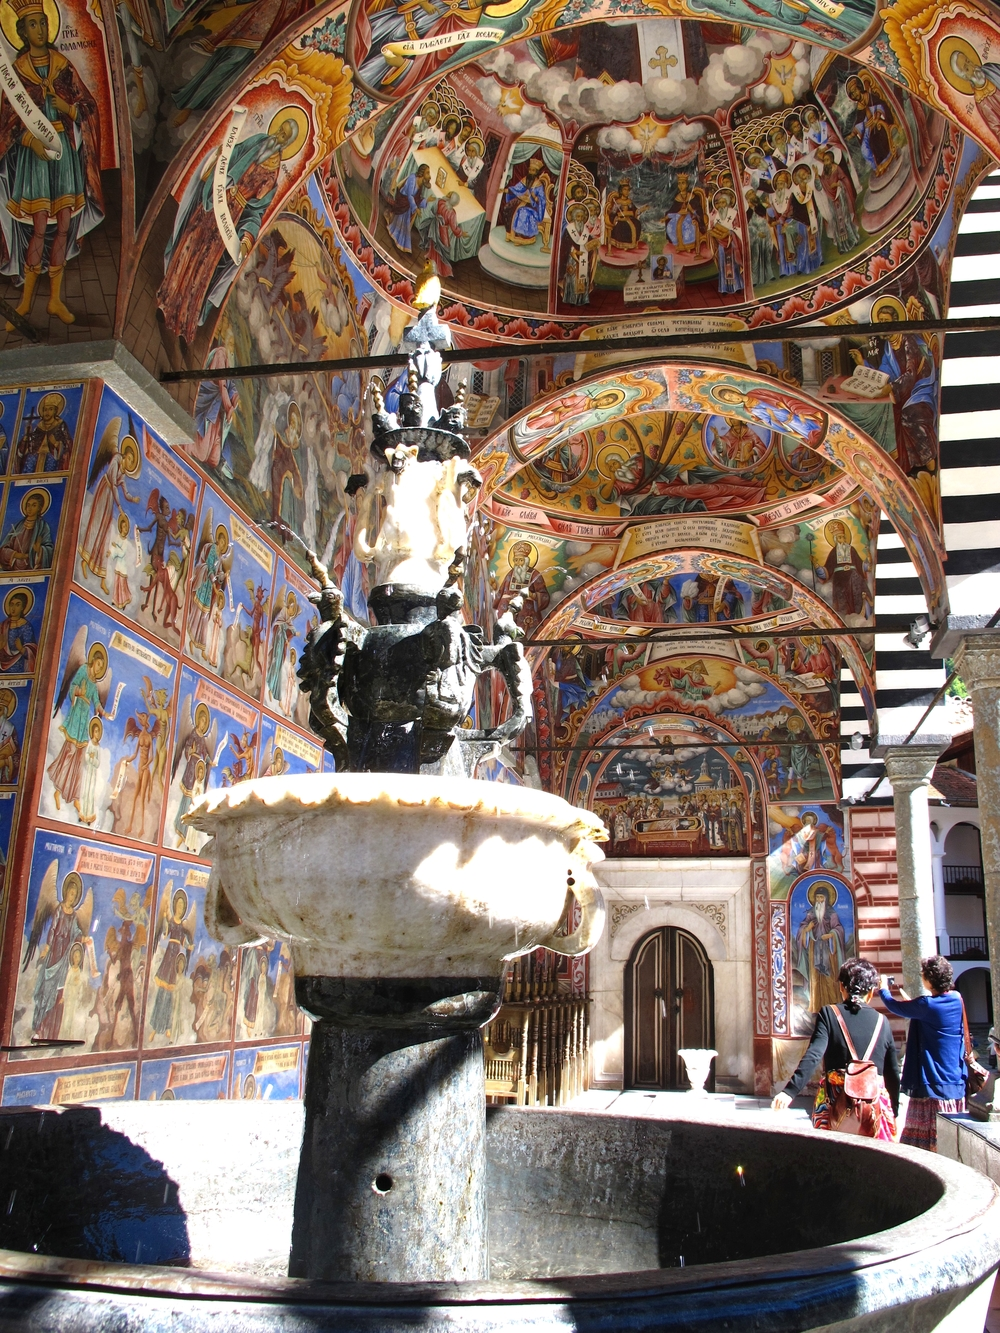 We are greeted by this golden dove fountain shimmering in sunlight.  Water splashes into the basin and birds sing from nearby trees.    © Evelyn Weliver  Church of the Nativity, Rila Monastery, Bulgaria